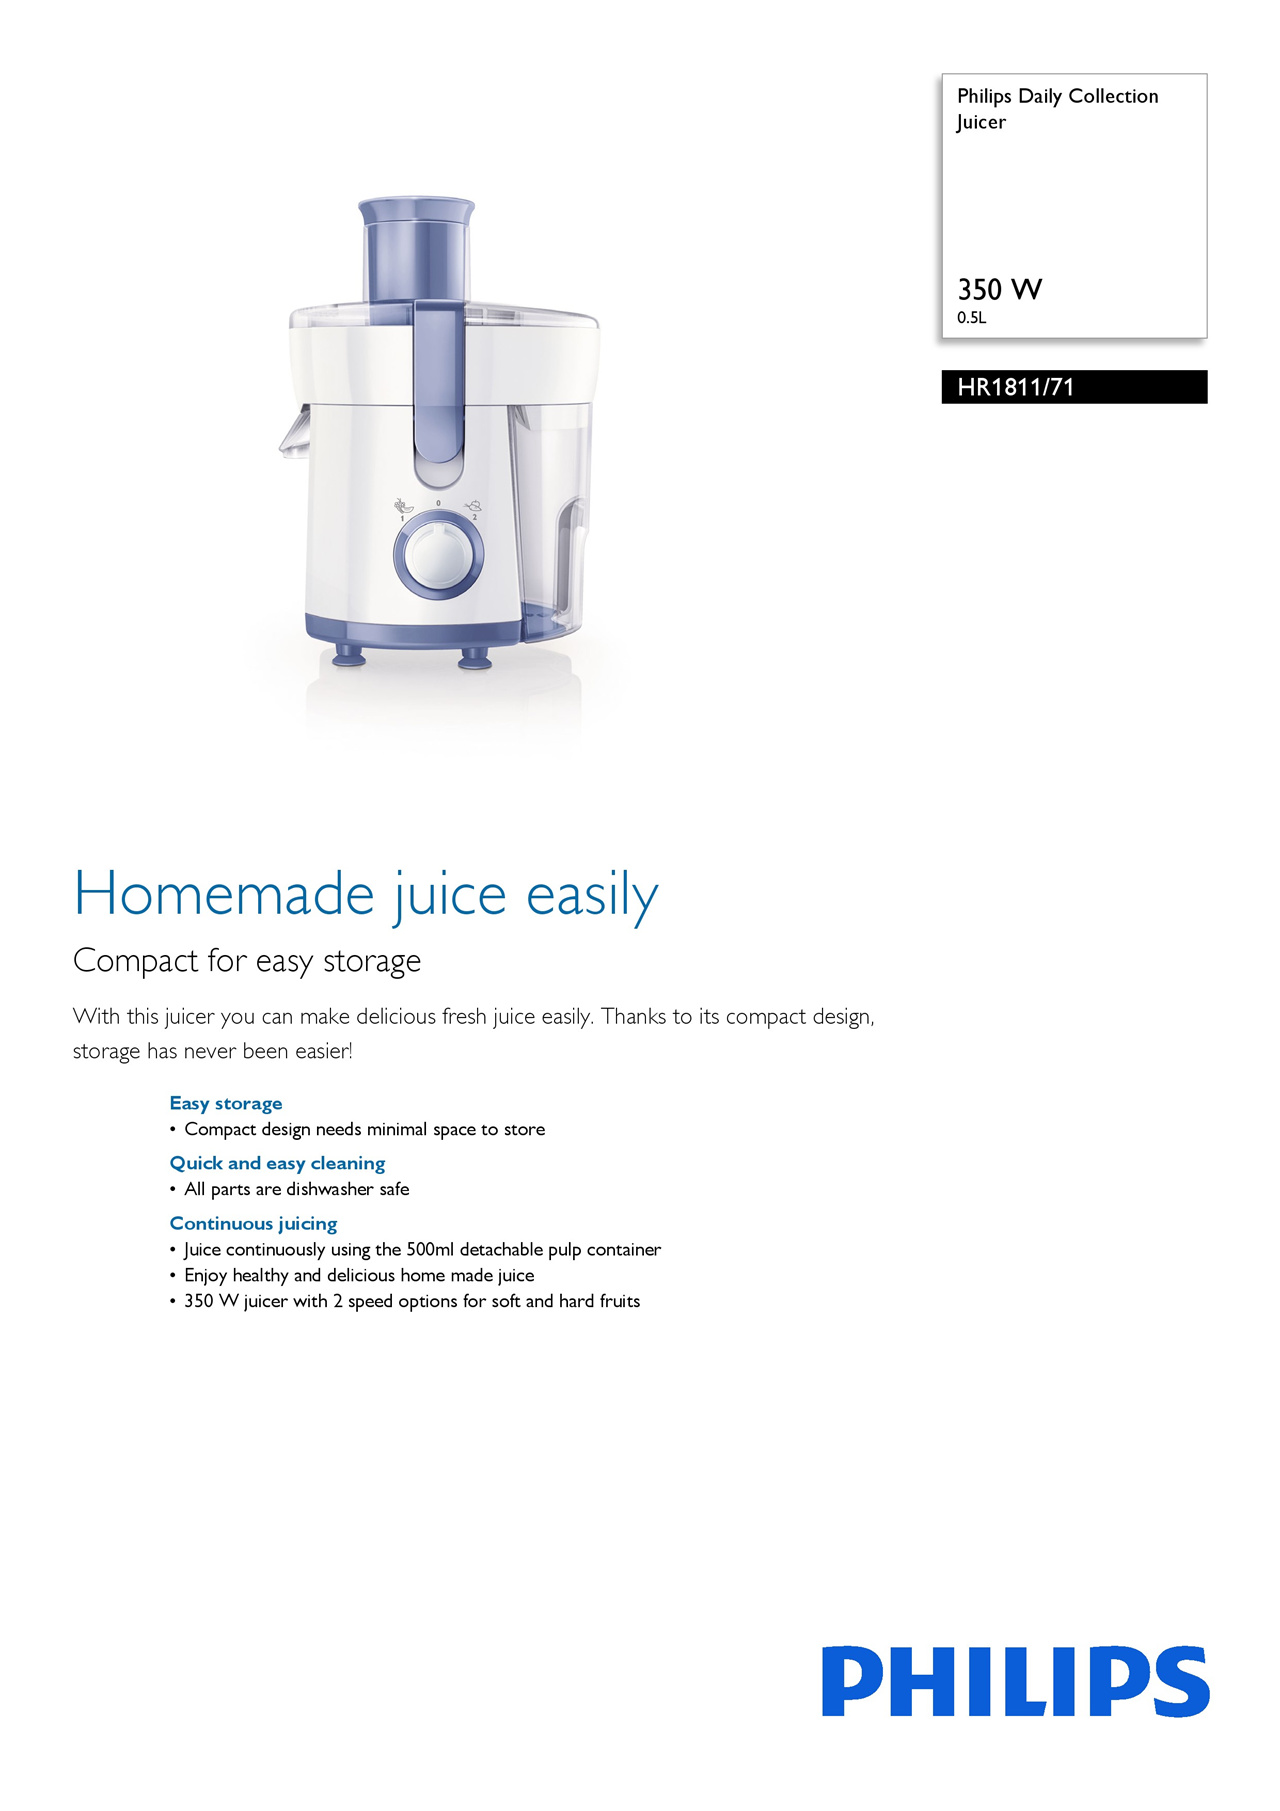 Every Need Want Day Philips Juicer Extractor Hr1811 1 Year Local Warranty